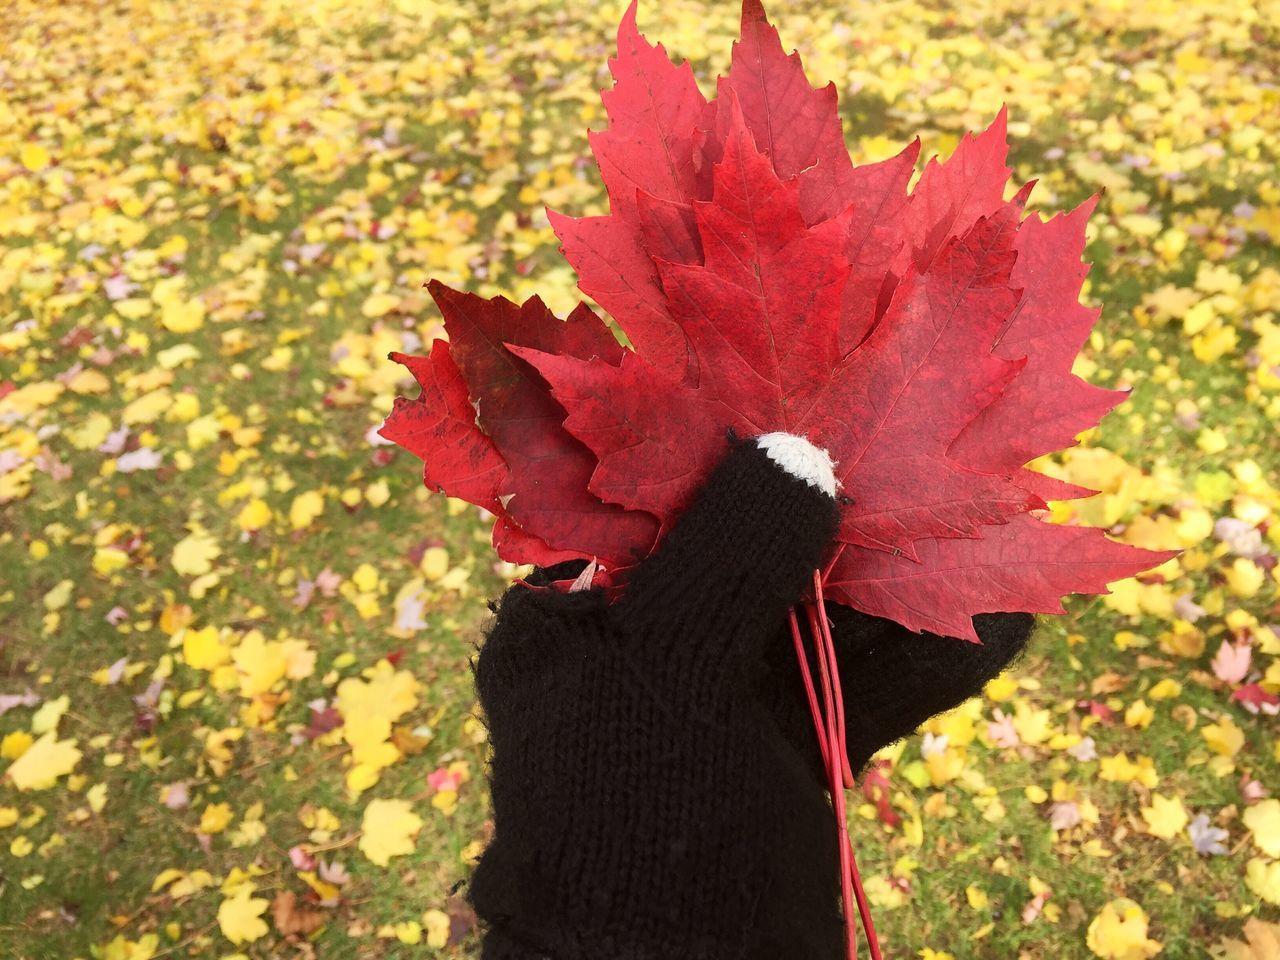 leaf, autumn, nature, one person, change, day, outdoors, red, real people, maple leaf, beauty in nature, lifestyles, growth, human hand, fragility, close-up, freshness, maple, adult, people